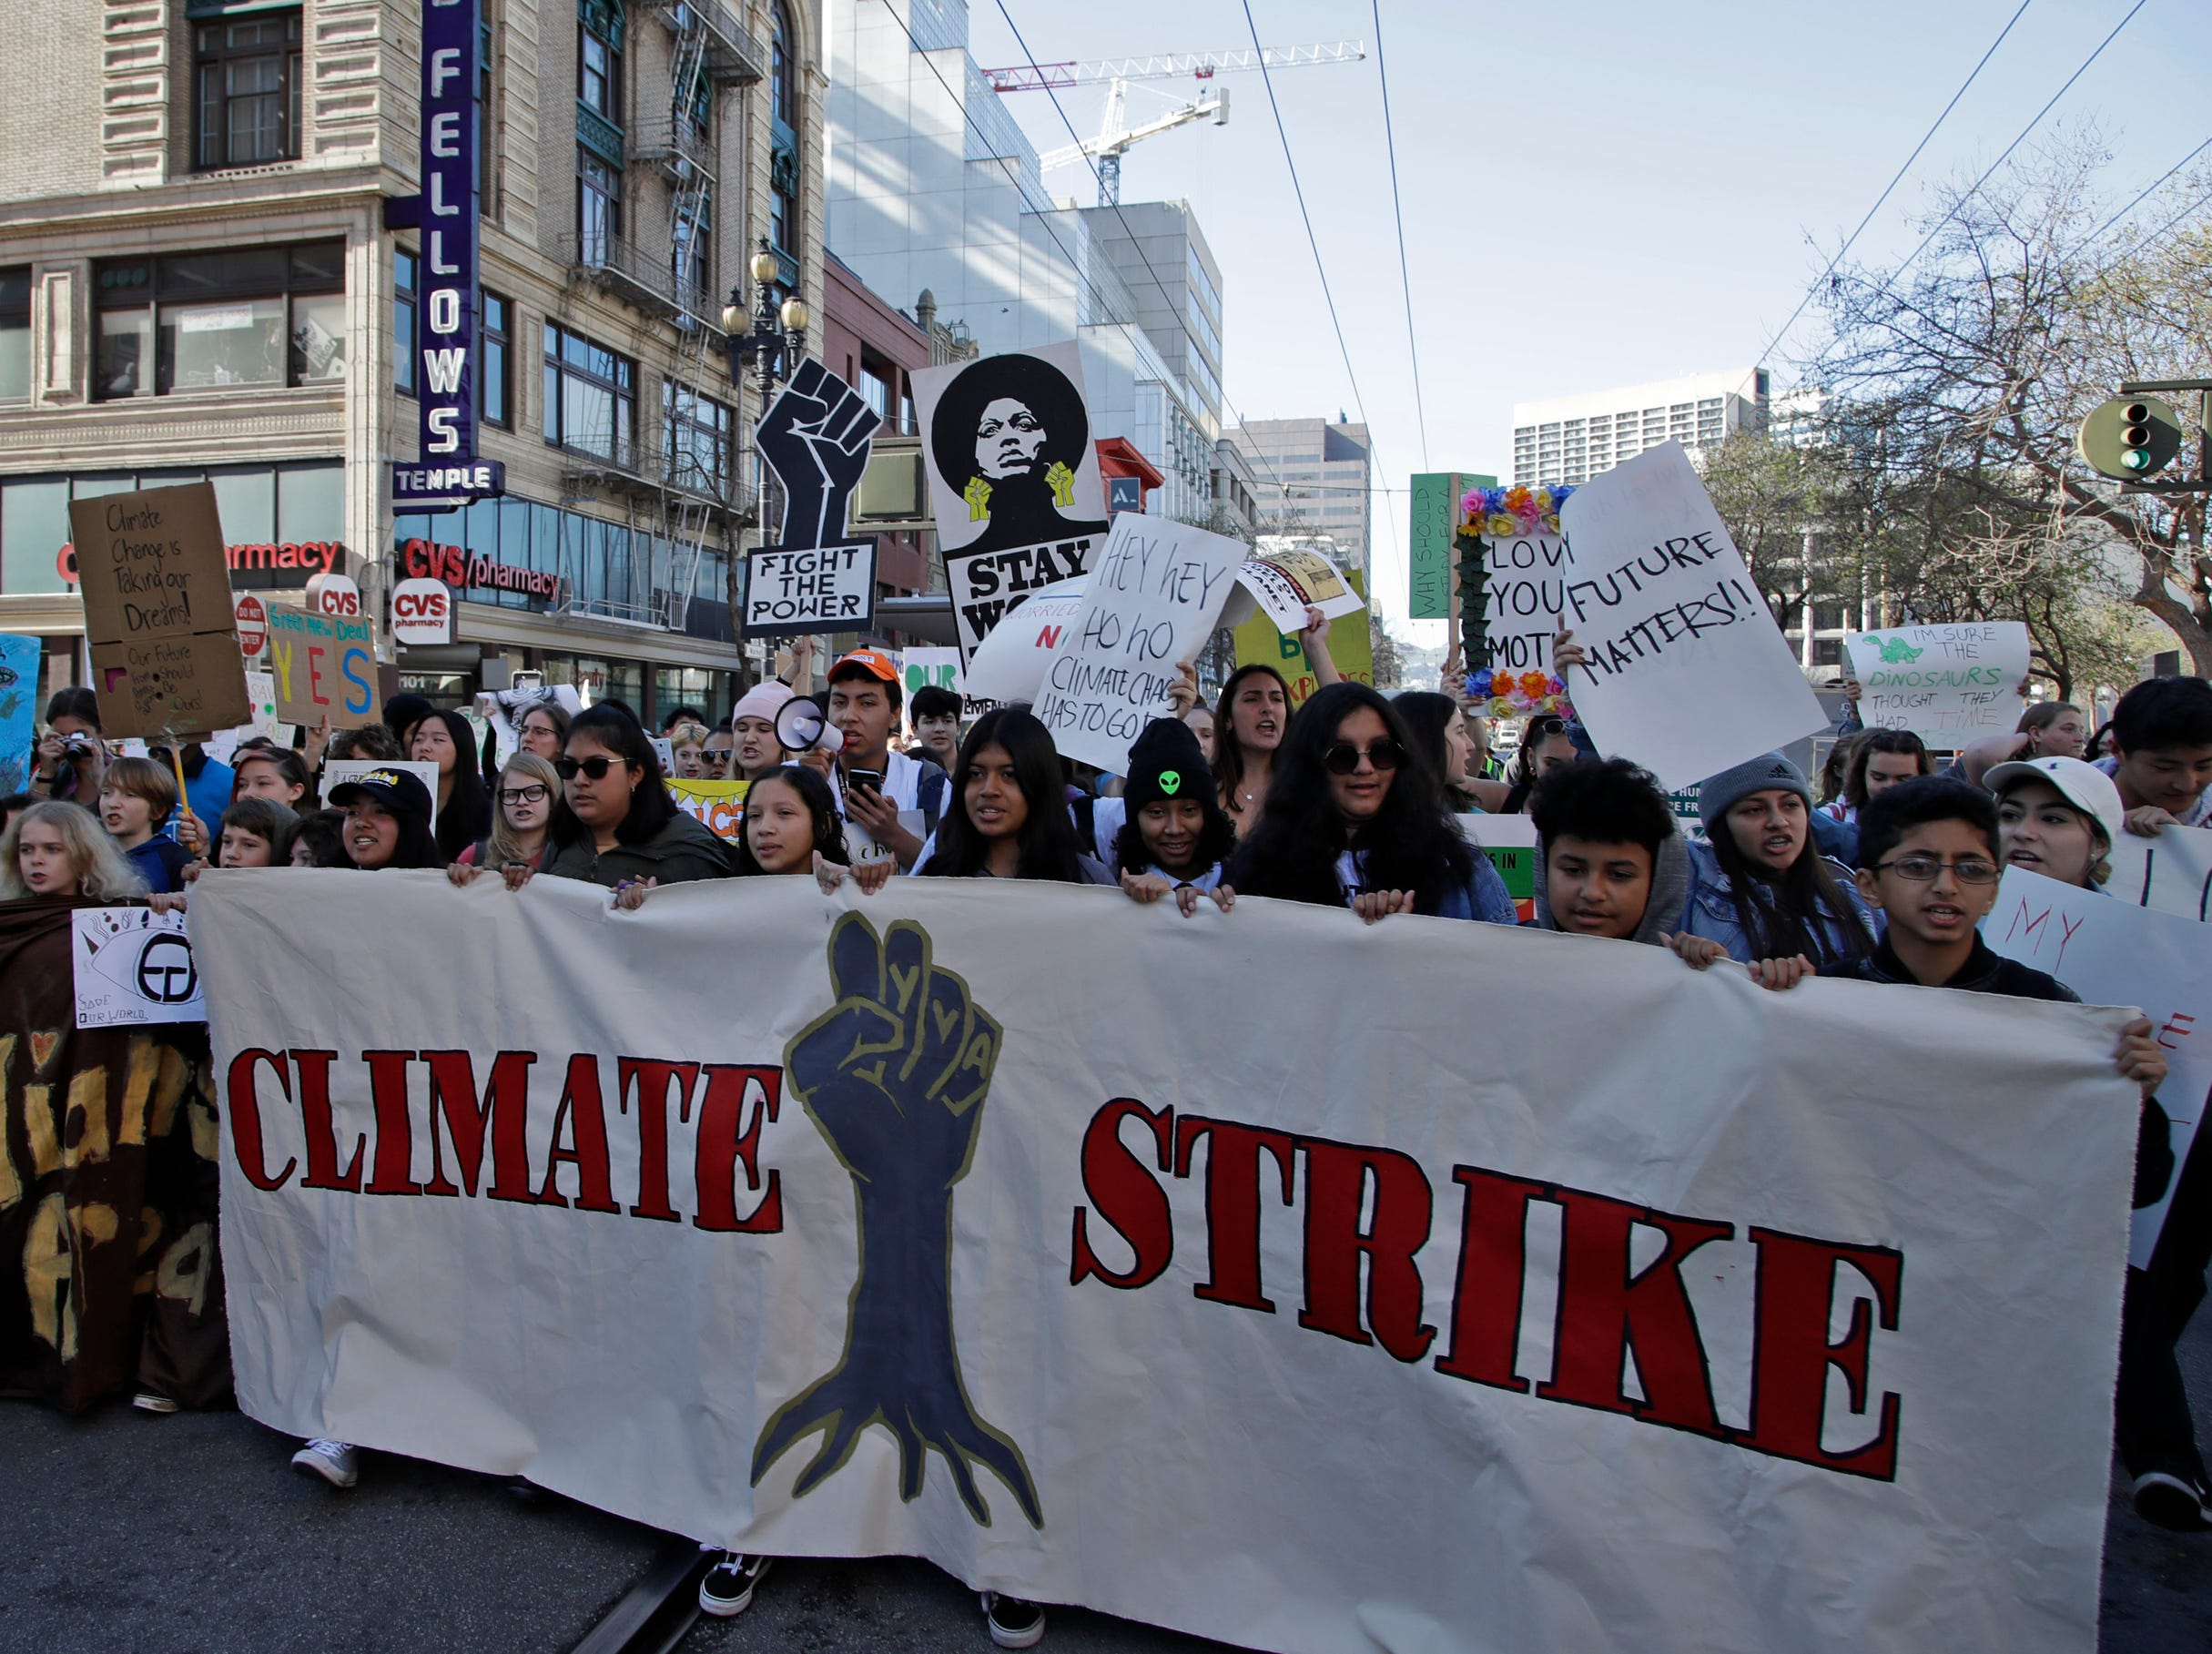 Students march along Market Street during a protest against climate change Friday, March 15, 2019, in San Francisco. From the South Pacific to the edge of the Arctic Circle, students are skipping classes to protest what they see as the failures of their governments to take tough action against global warming. The 'school strikes' on Friday were inspired by 16-year-old Swedish activist Greta Thunberg and are taking place in over 100 countries.